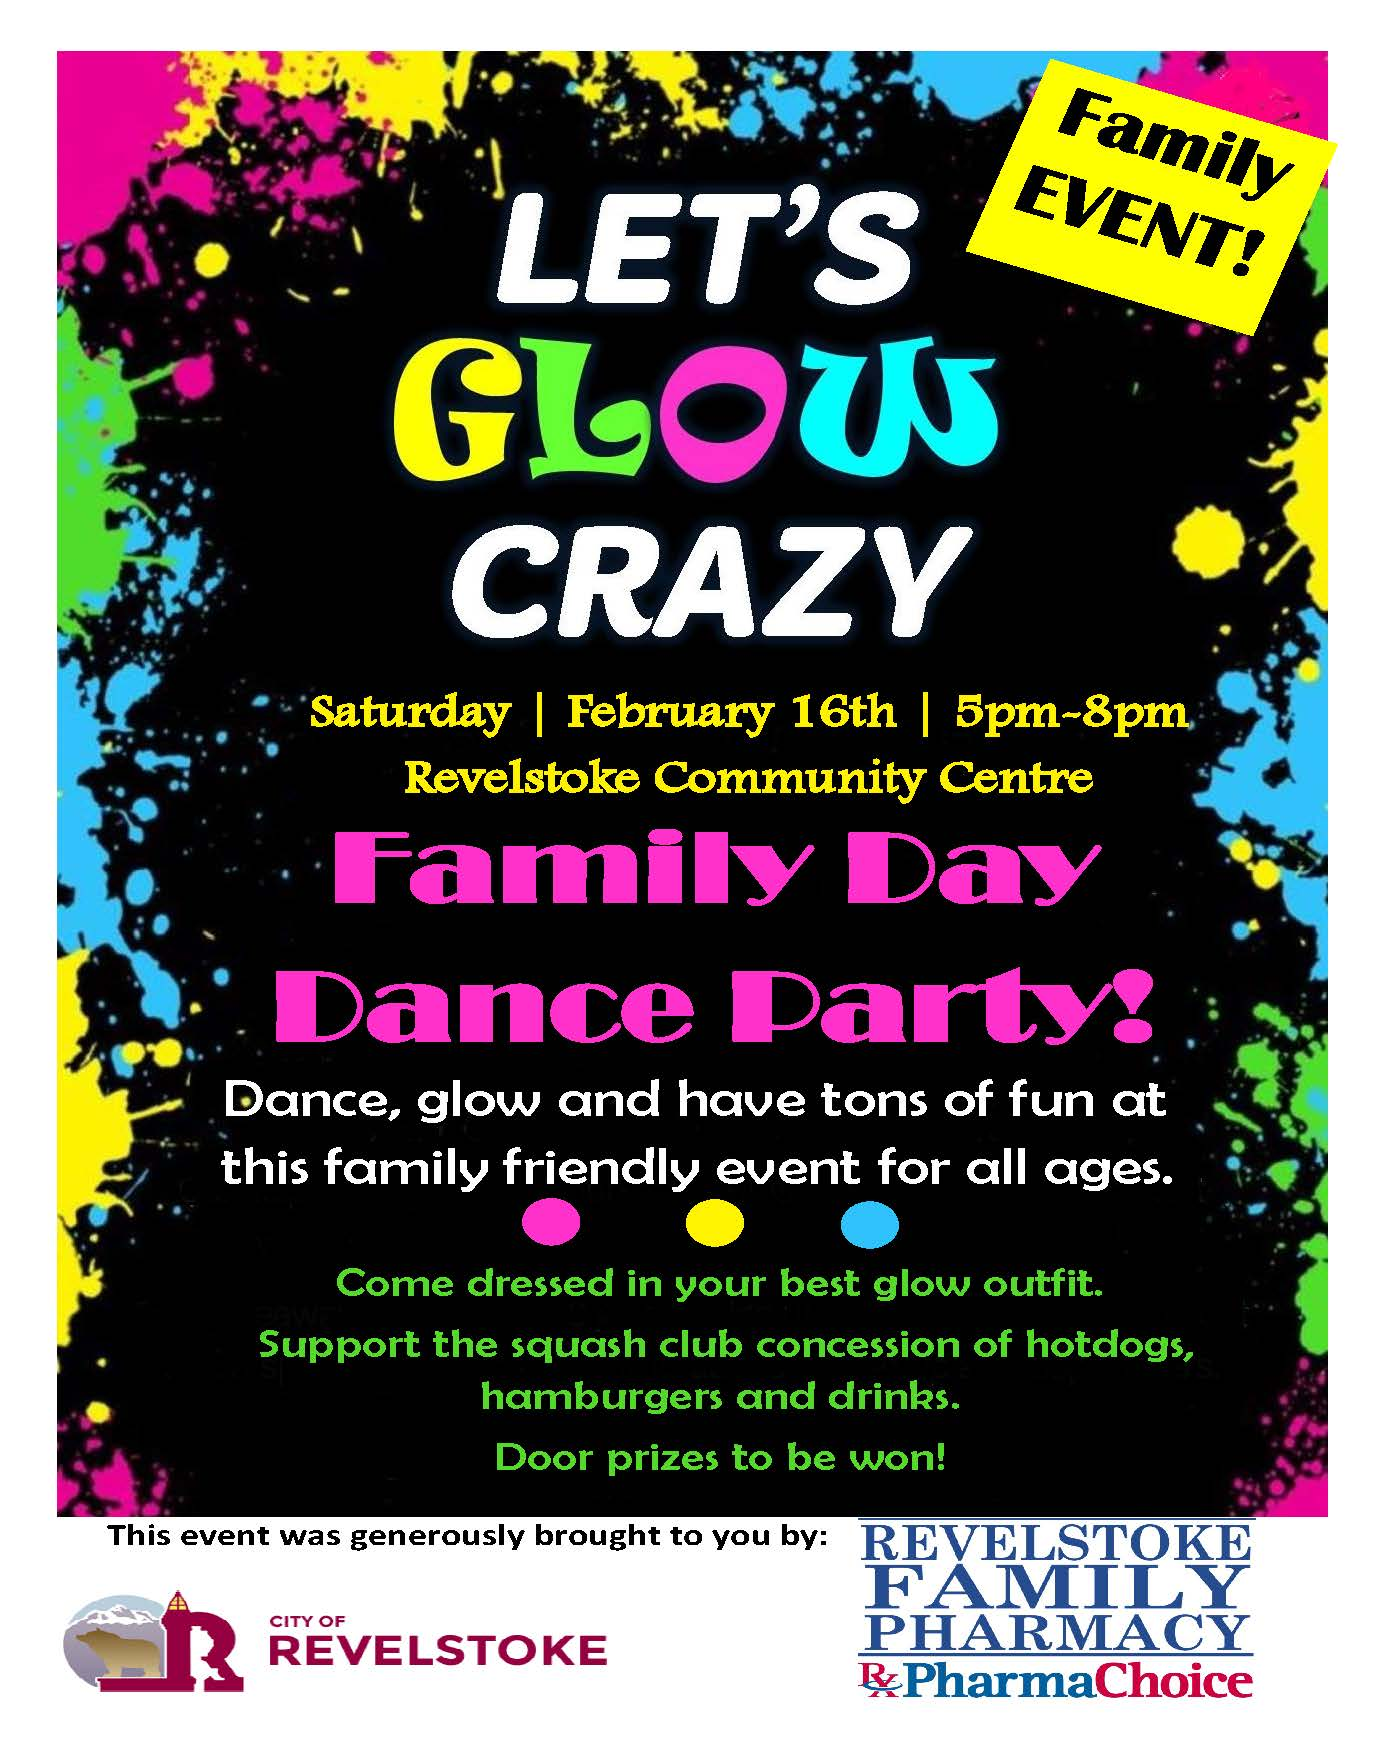 Let's Glow Crazy FREE Family Day Dance @ Community Centre |  |  |